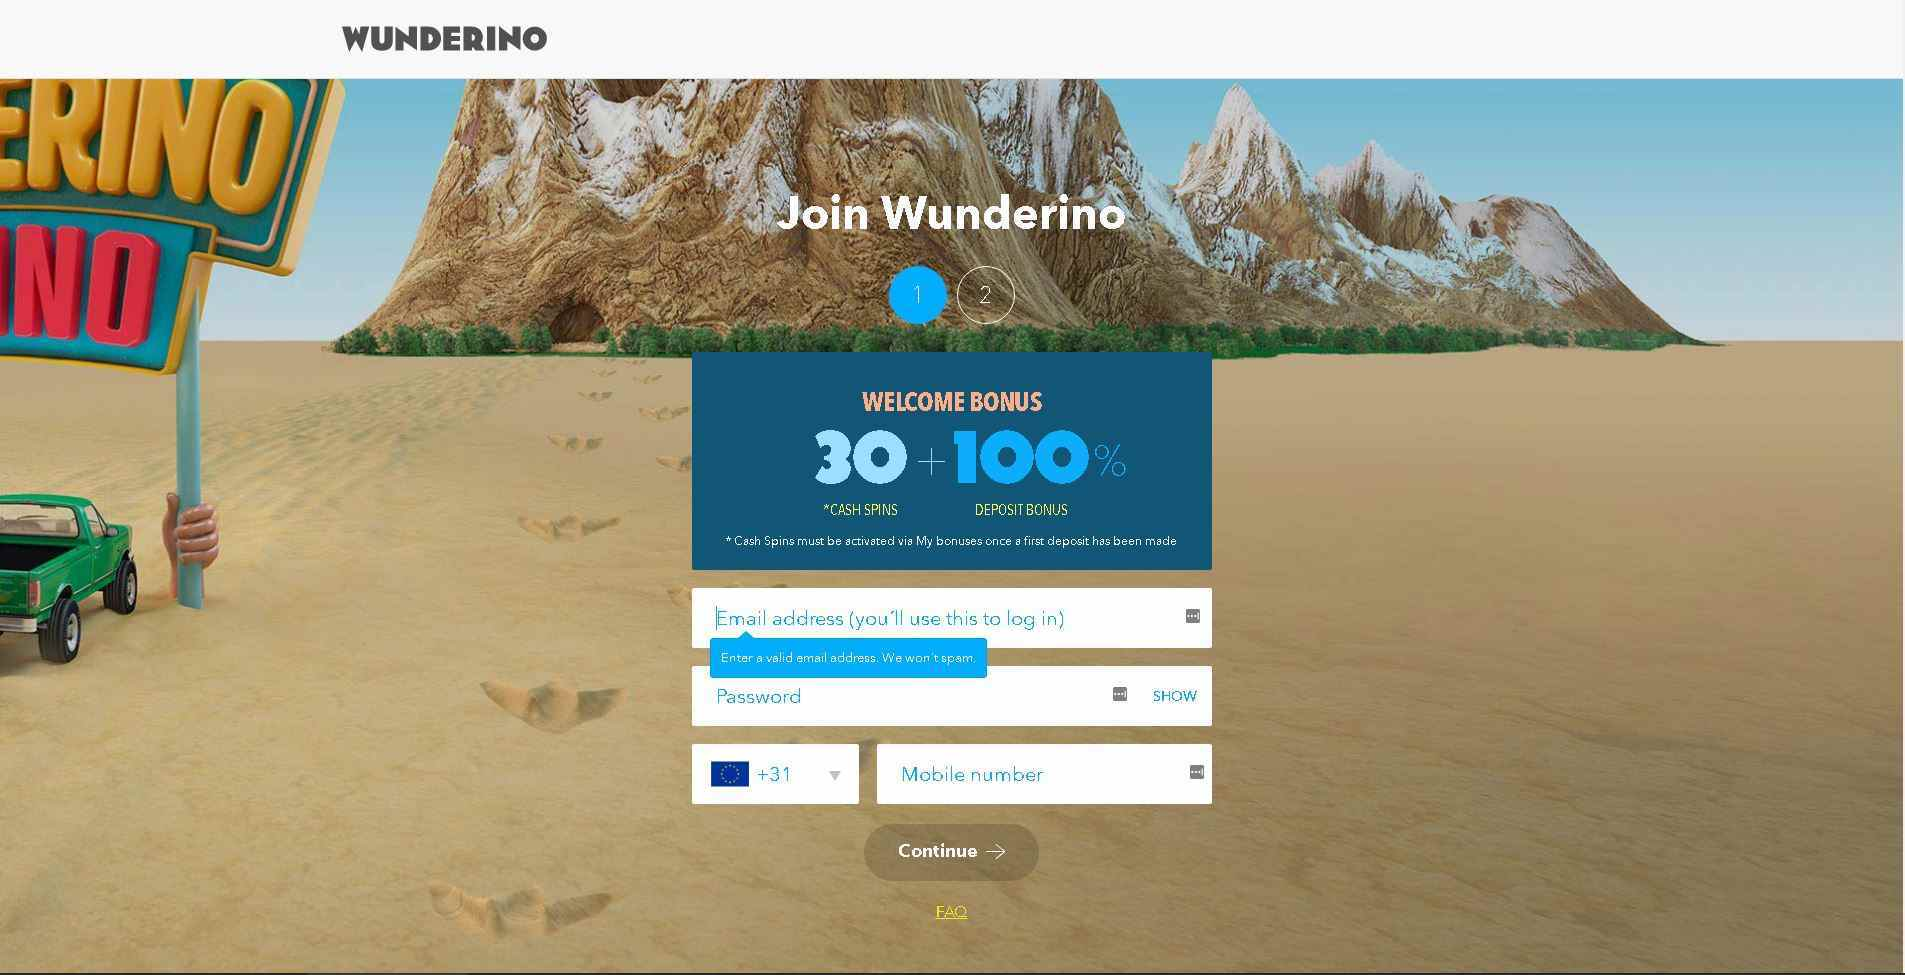 Wunderino Registration